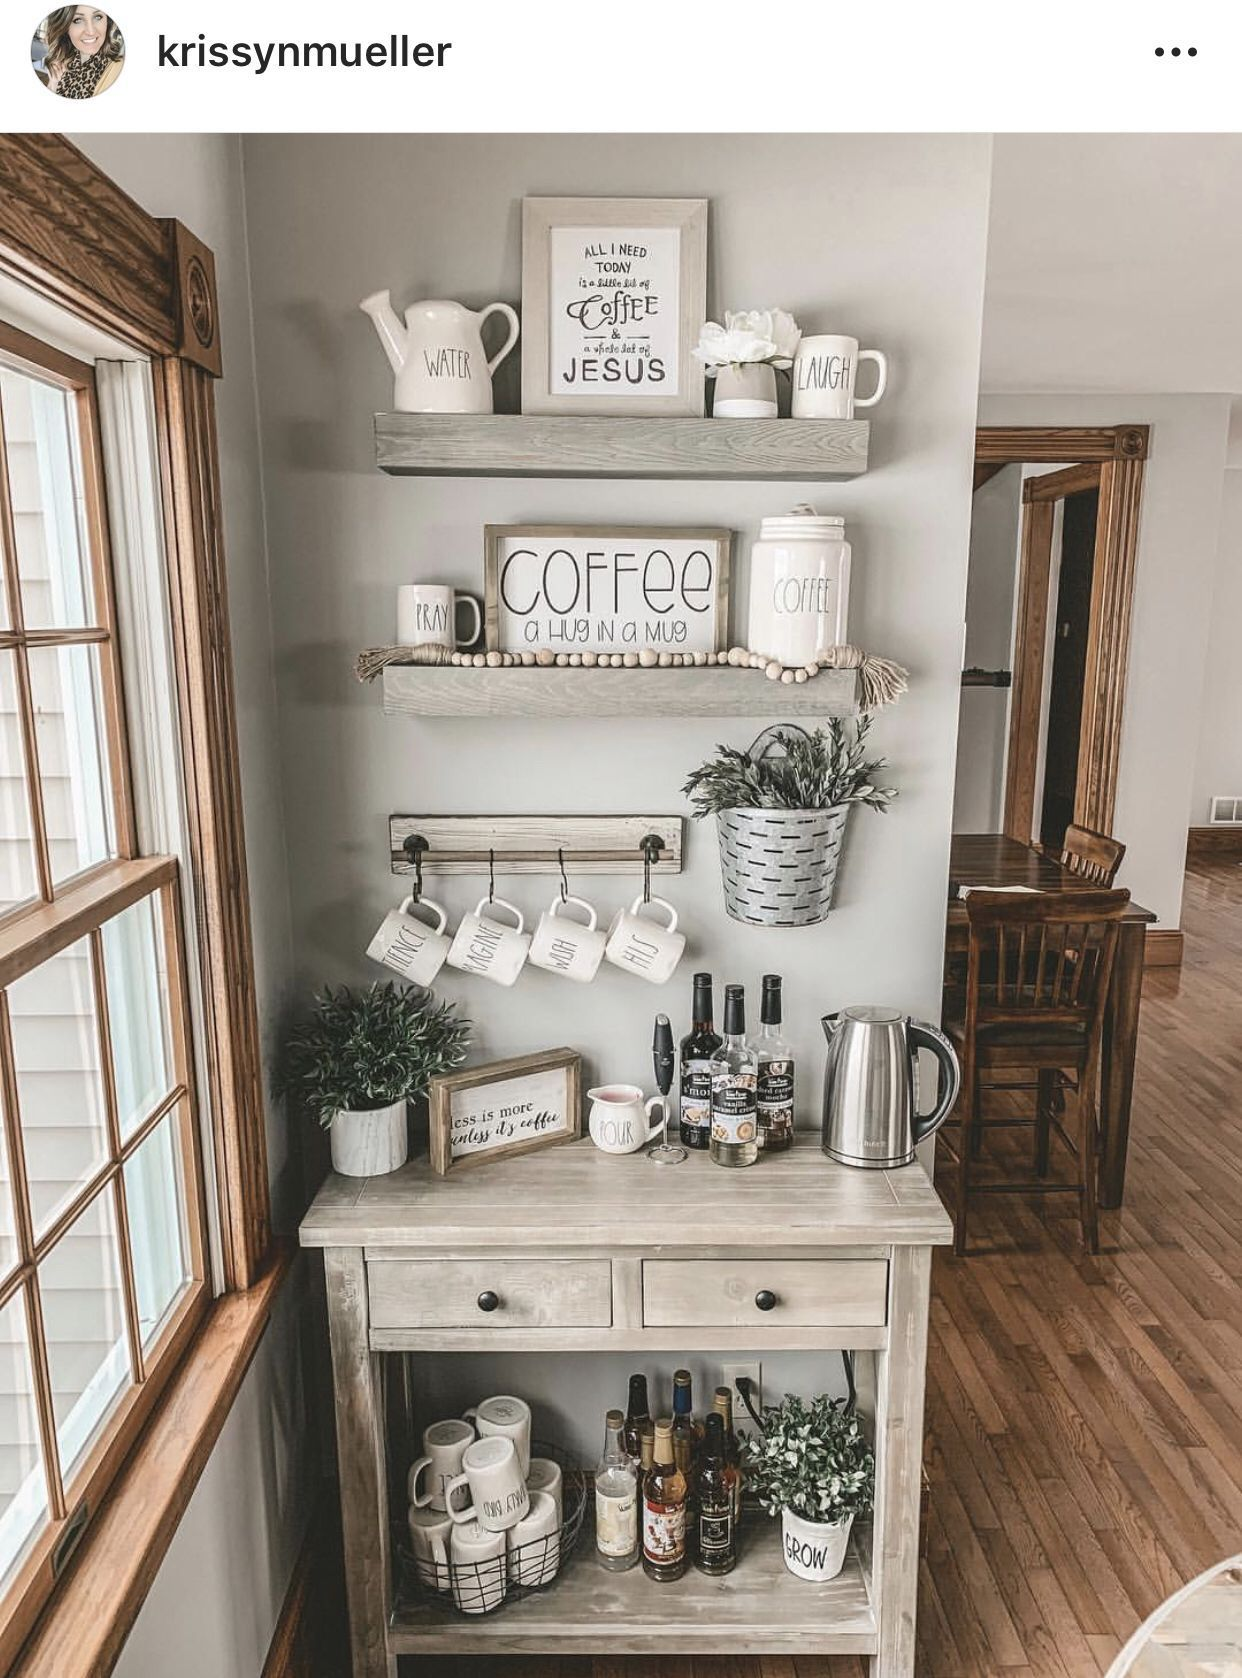 34+ Outstanding DIY Coffee Bar Ideas for Your Cozy Home / Coffee Shop #bar #coffee #Cozy #DIY #Home #ideas #outstanding #Shop #coffeebarideas